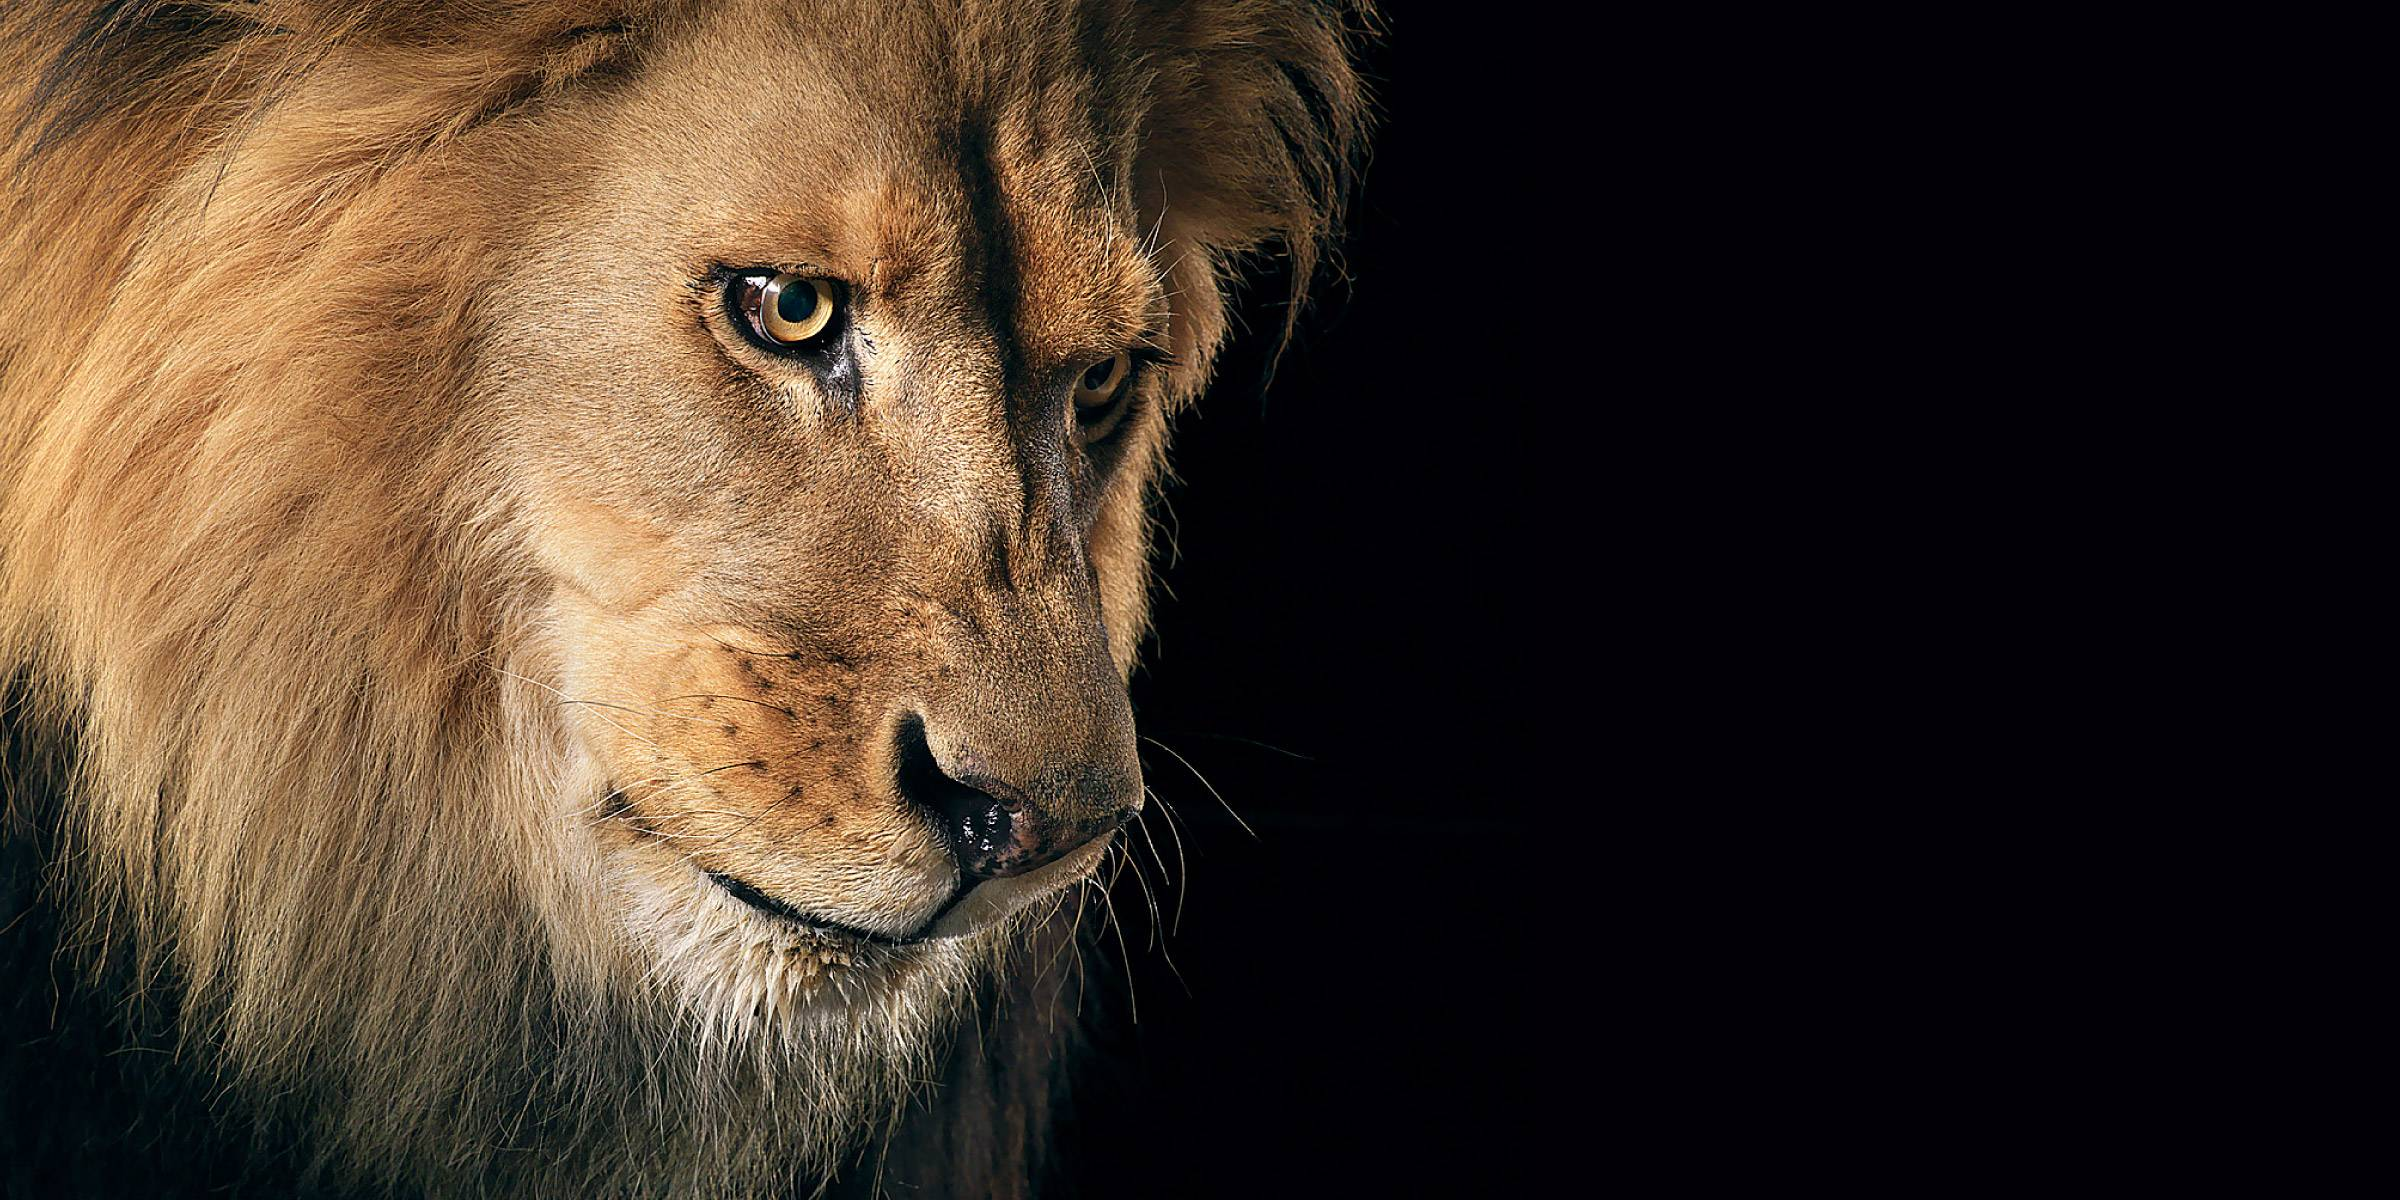 946 Lion HD Wallpapers | Backgrounds - Wallpaper Abyss